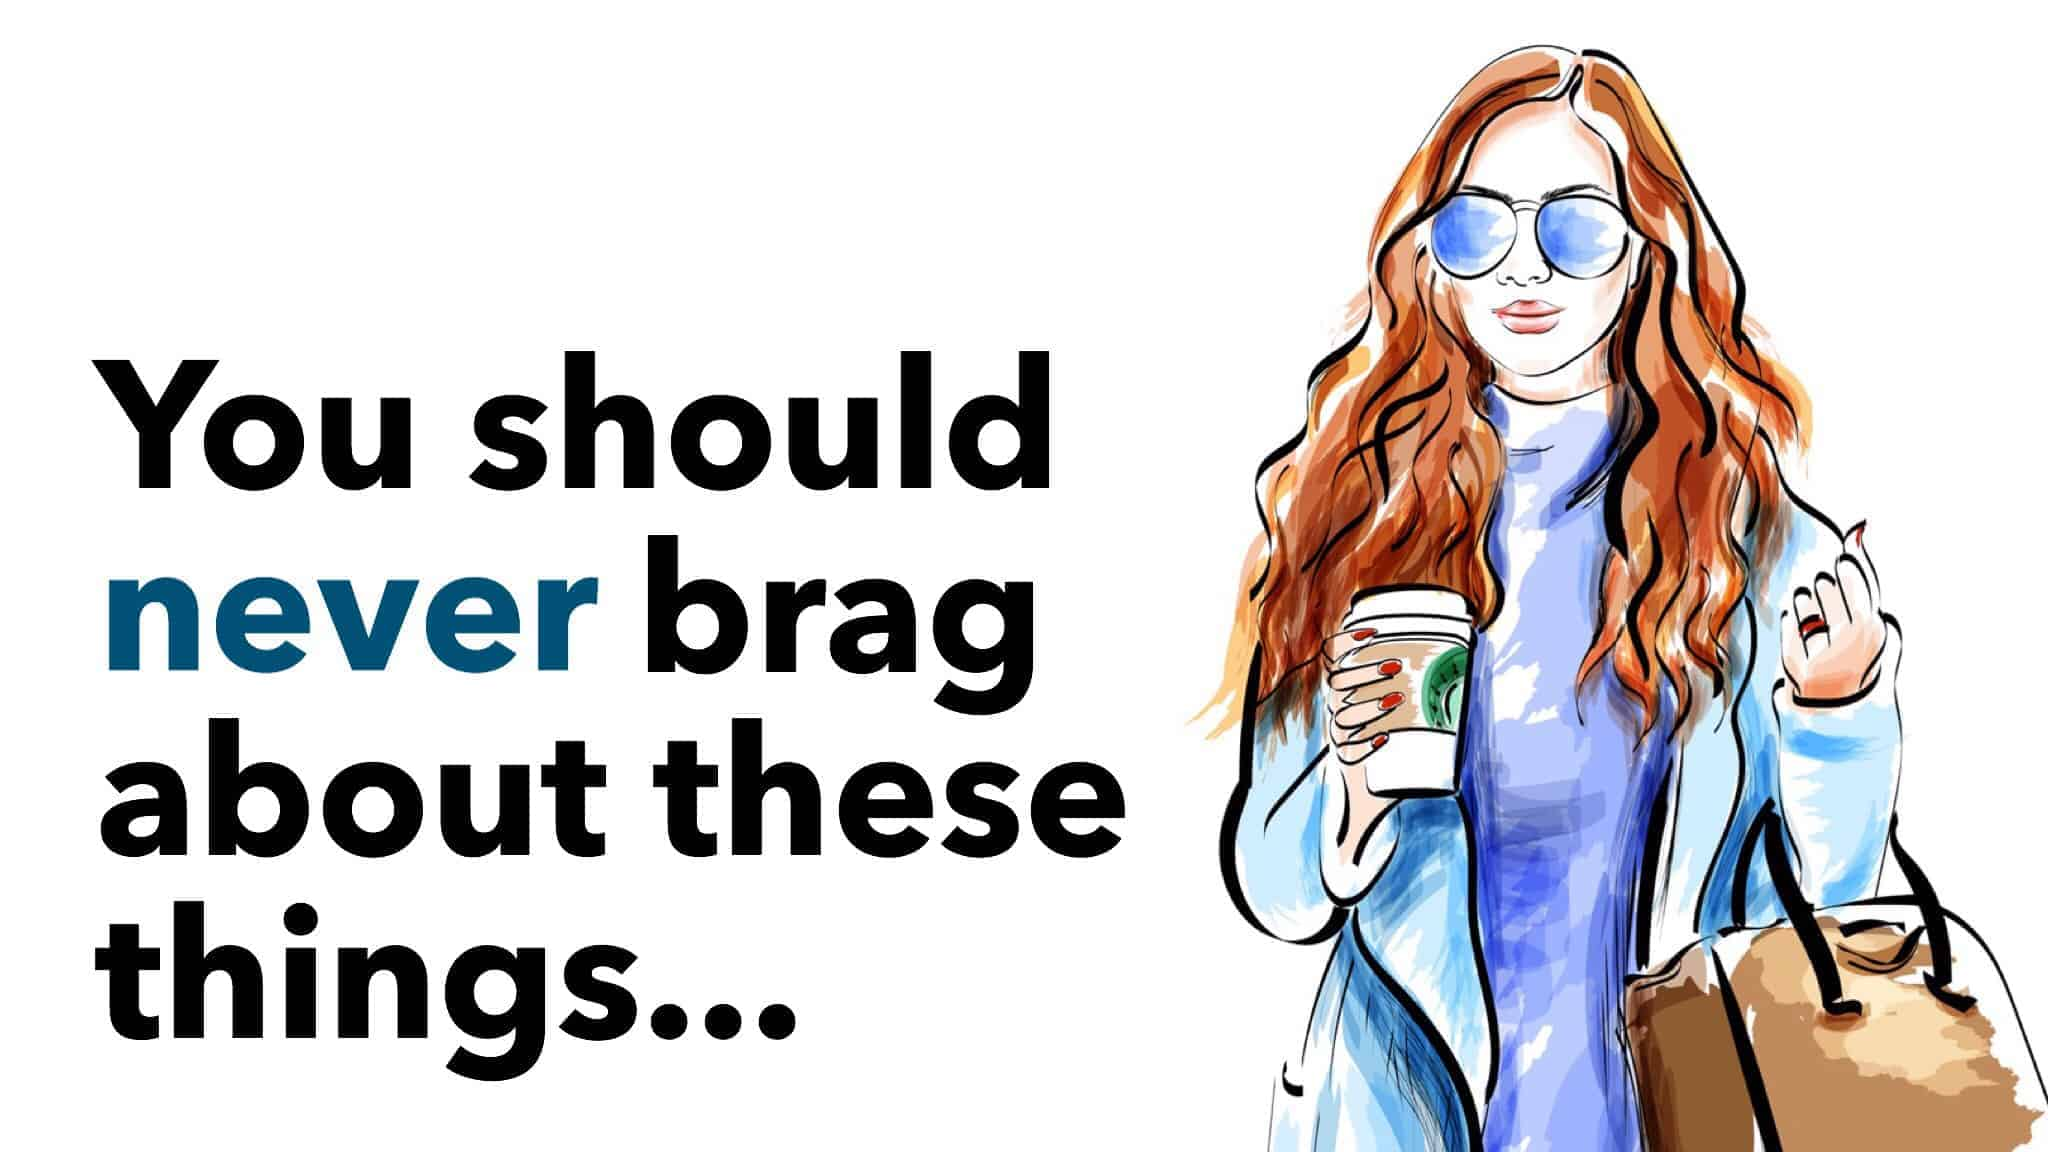 5 Things To Never Brag About